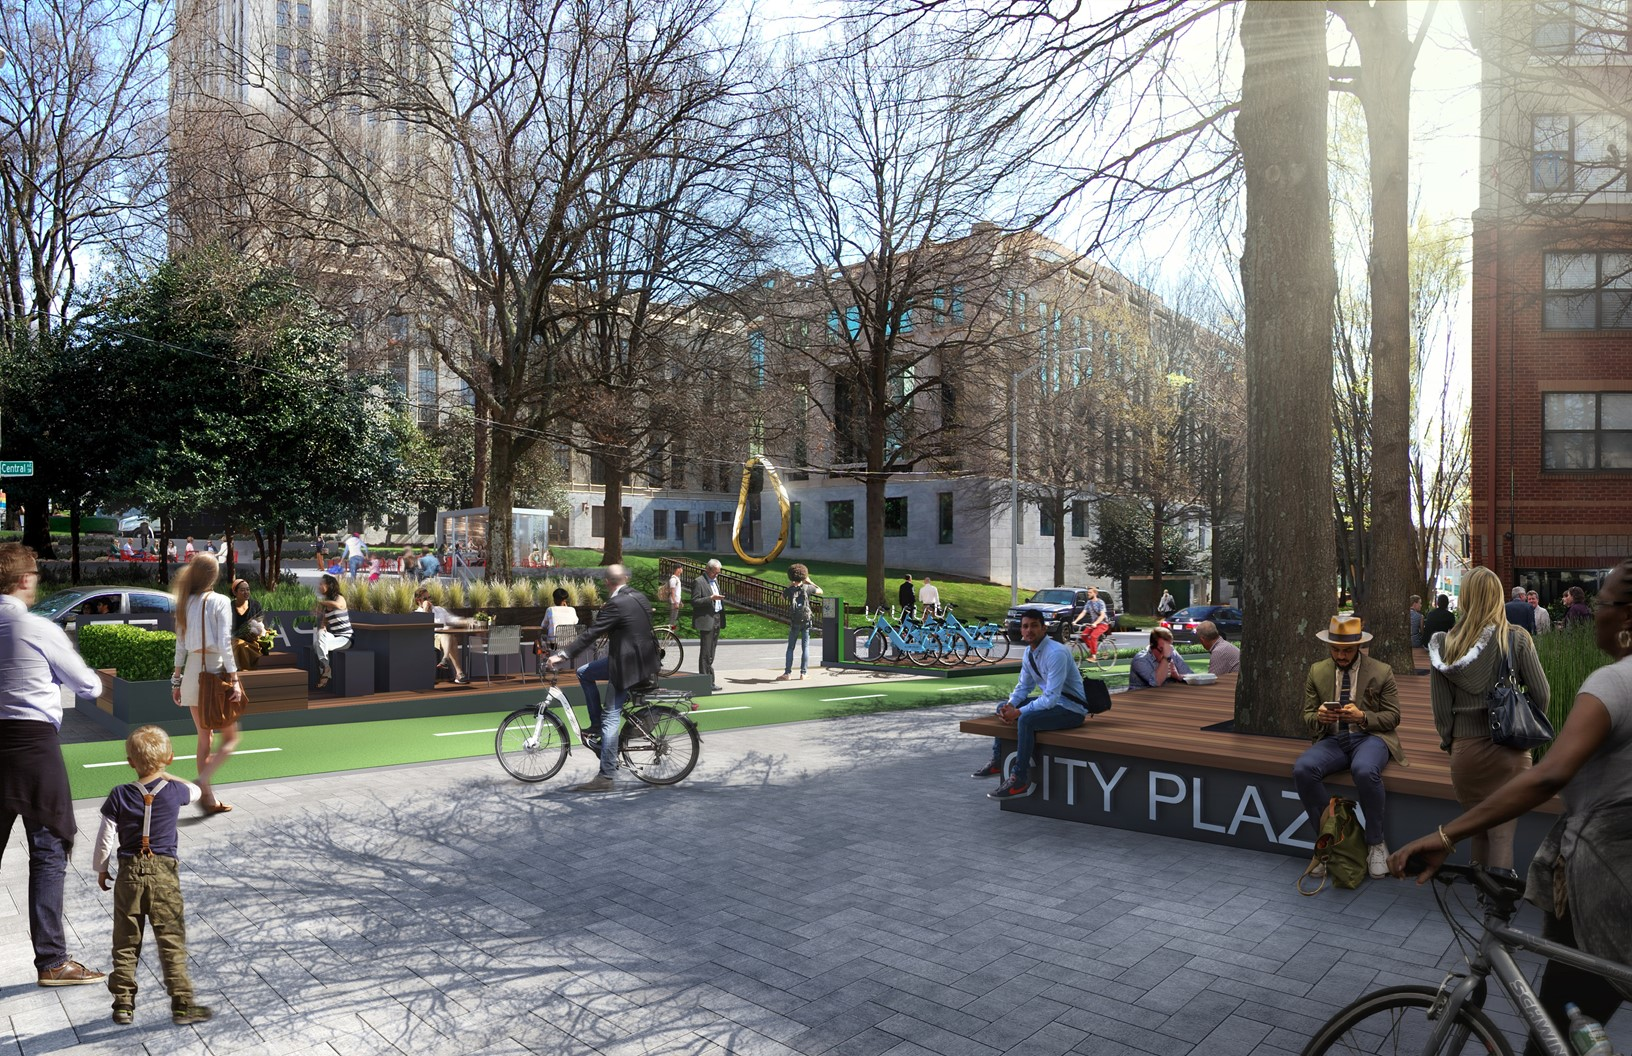 Redesigned City Plaza and parklet (courtesy of Perkins+Will)